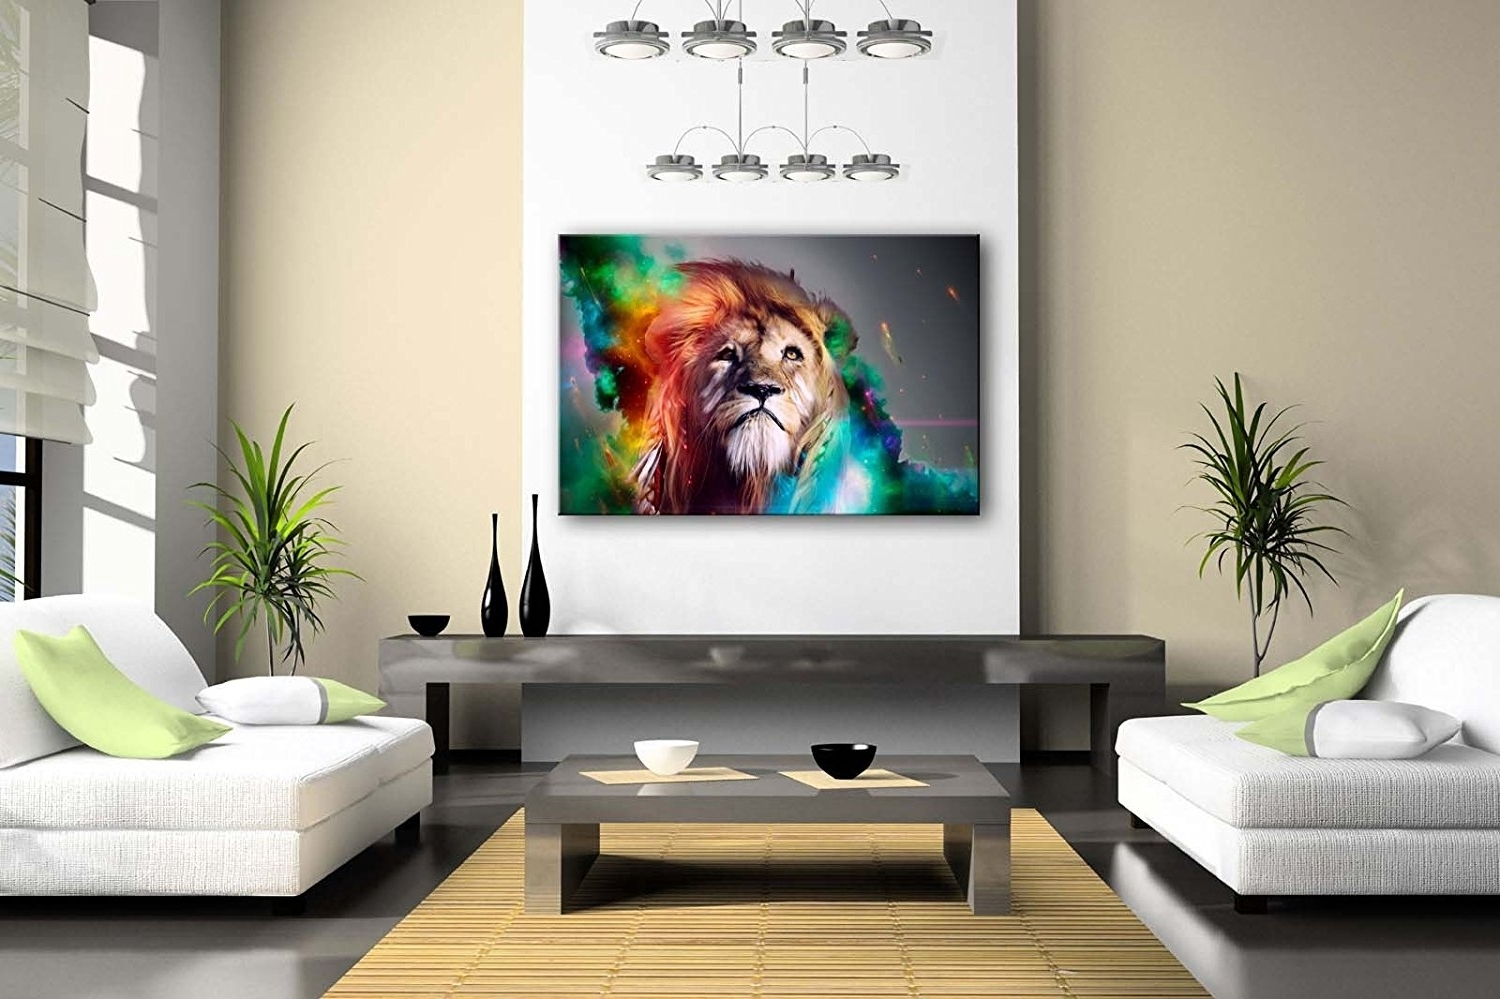 Living Room Painting Wall Art Pertaining To Best And Newest New Wall Art Paintings For Living Room (Gallery 6 of 20)